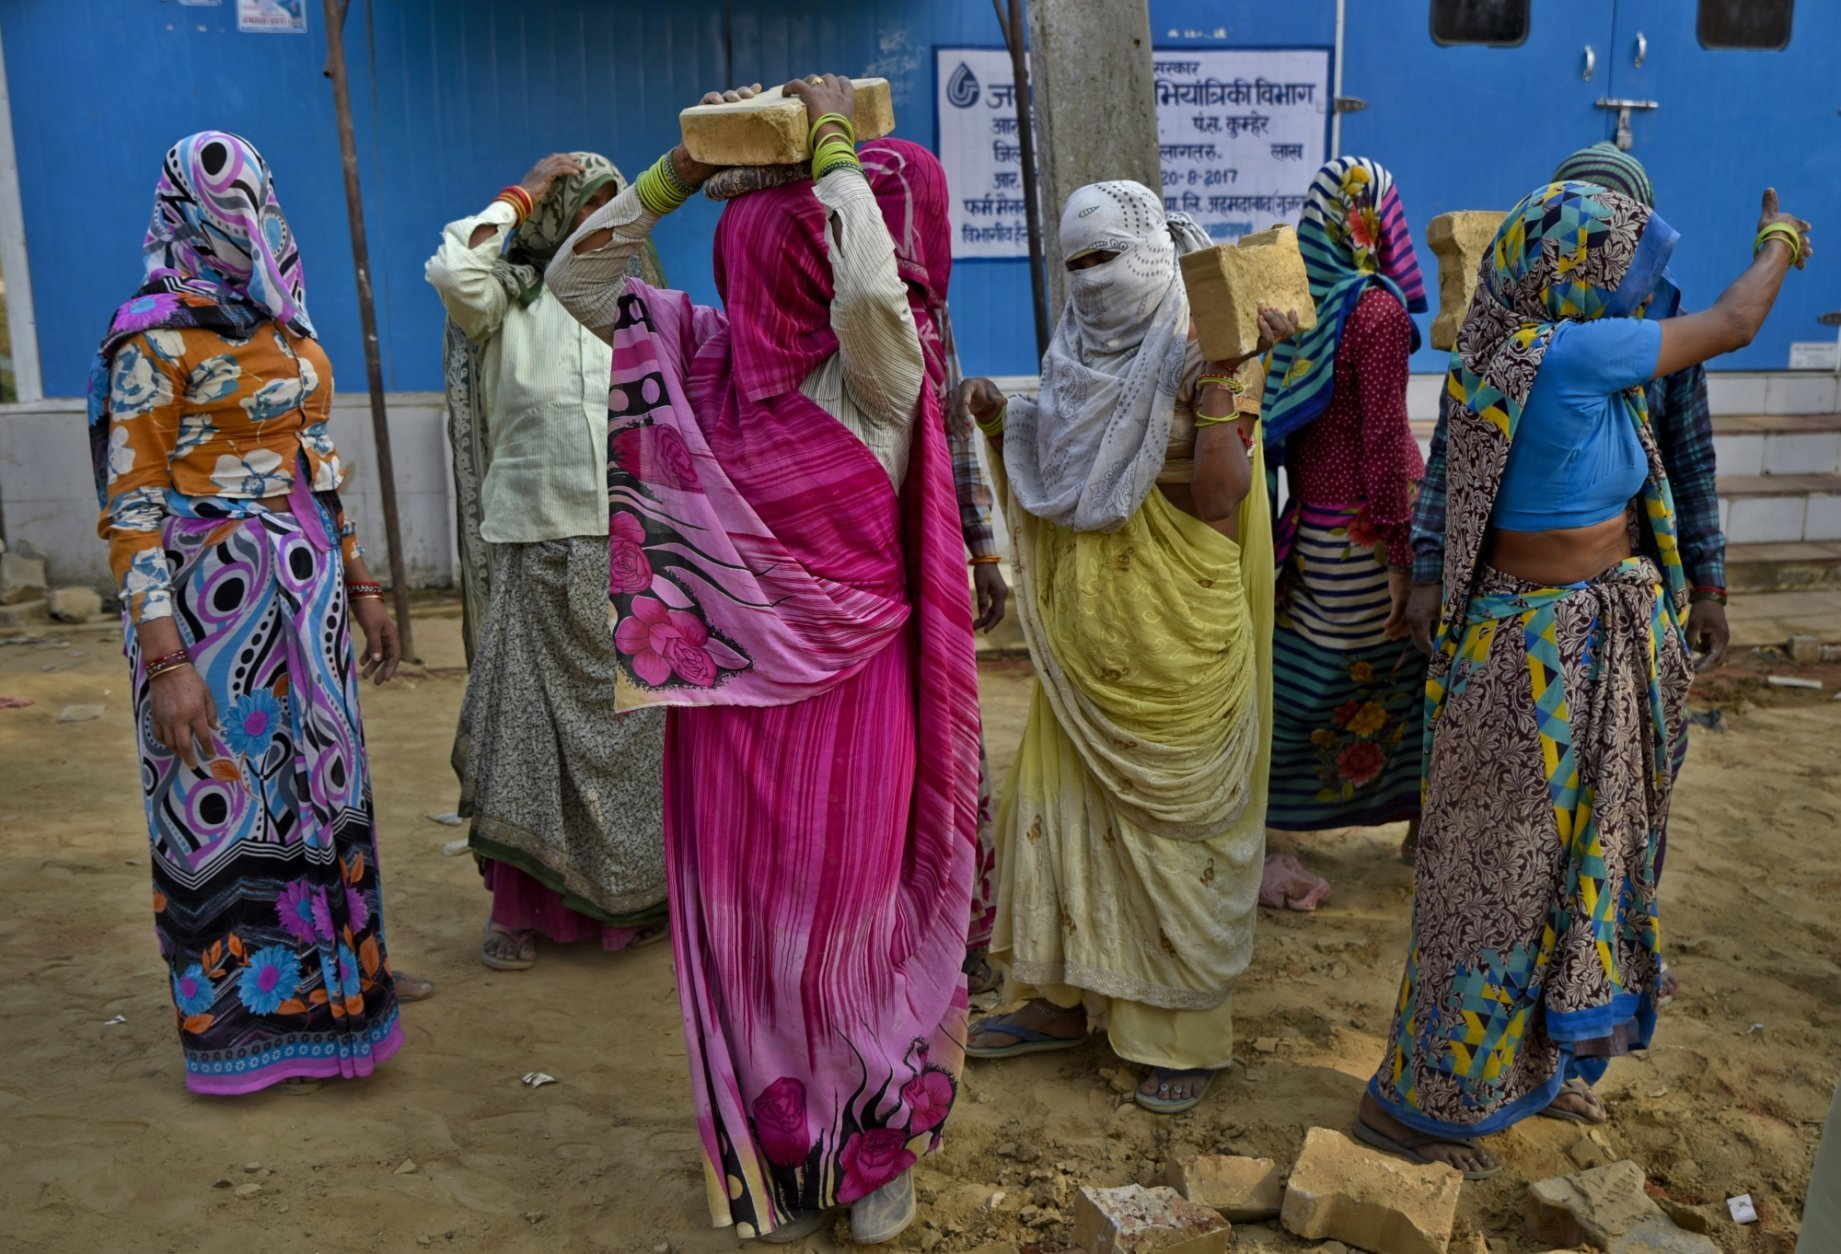 Rural women carry tiles that are being removed from a roadside at a village in Bharatpur, Rajasthan state, India, Saturday, Oct. 20, 2018. An Indian government scheme provides at least 100 days of guaranteed wage employment every year to every household whose adult members volunteer to do unskilled manual work. (AP Photo/R S Iyer)